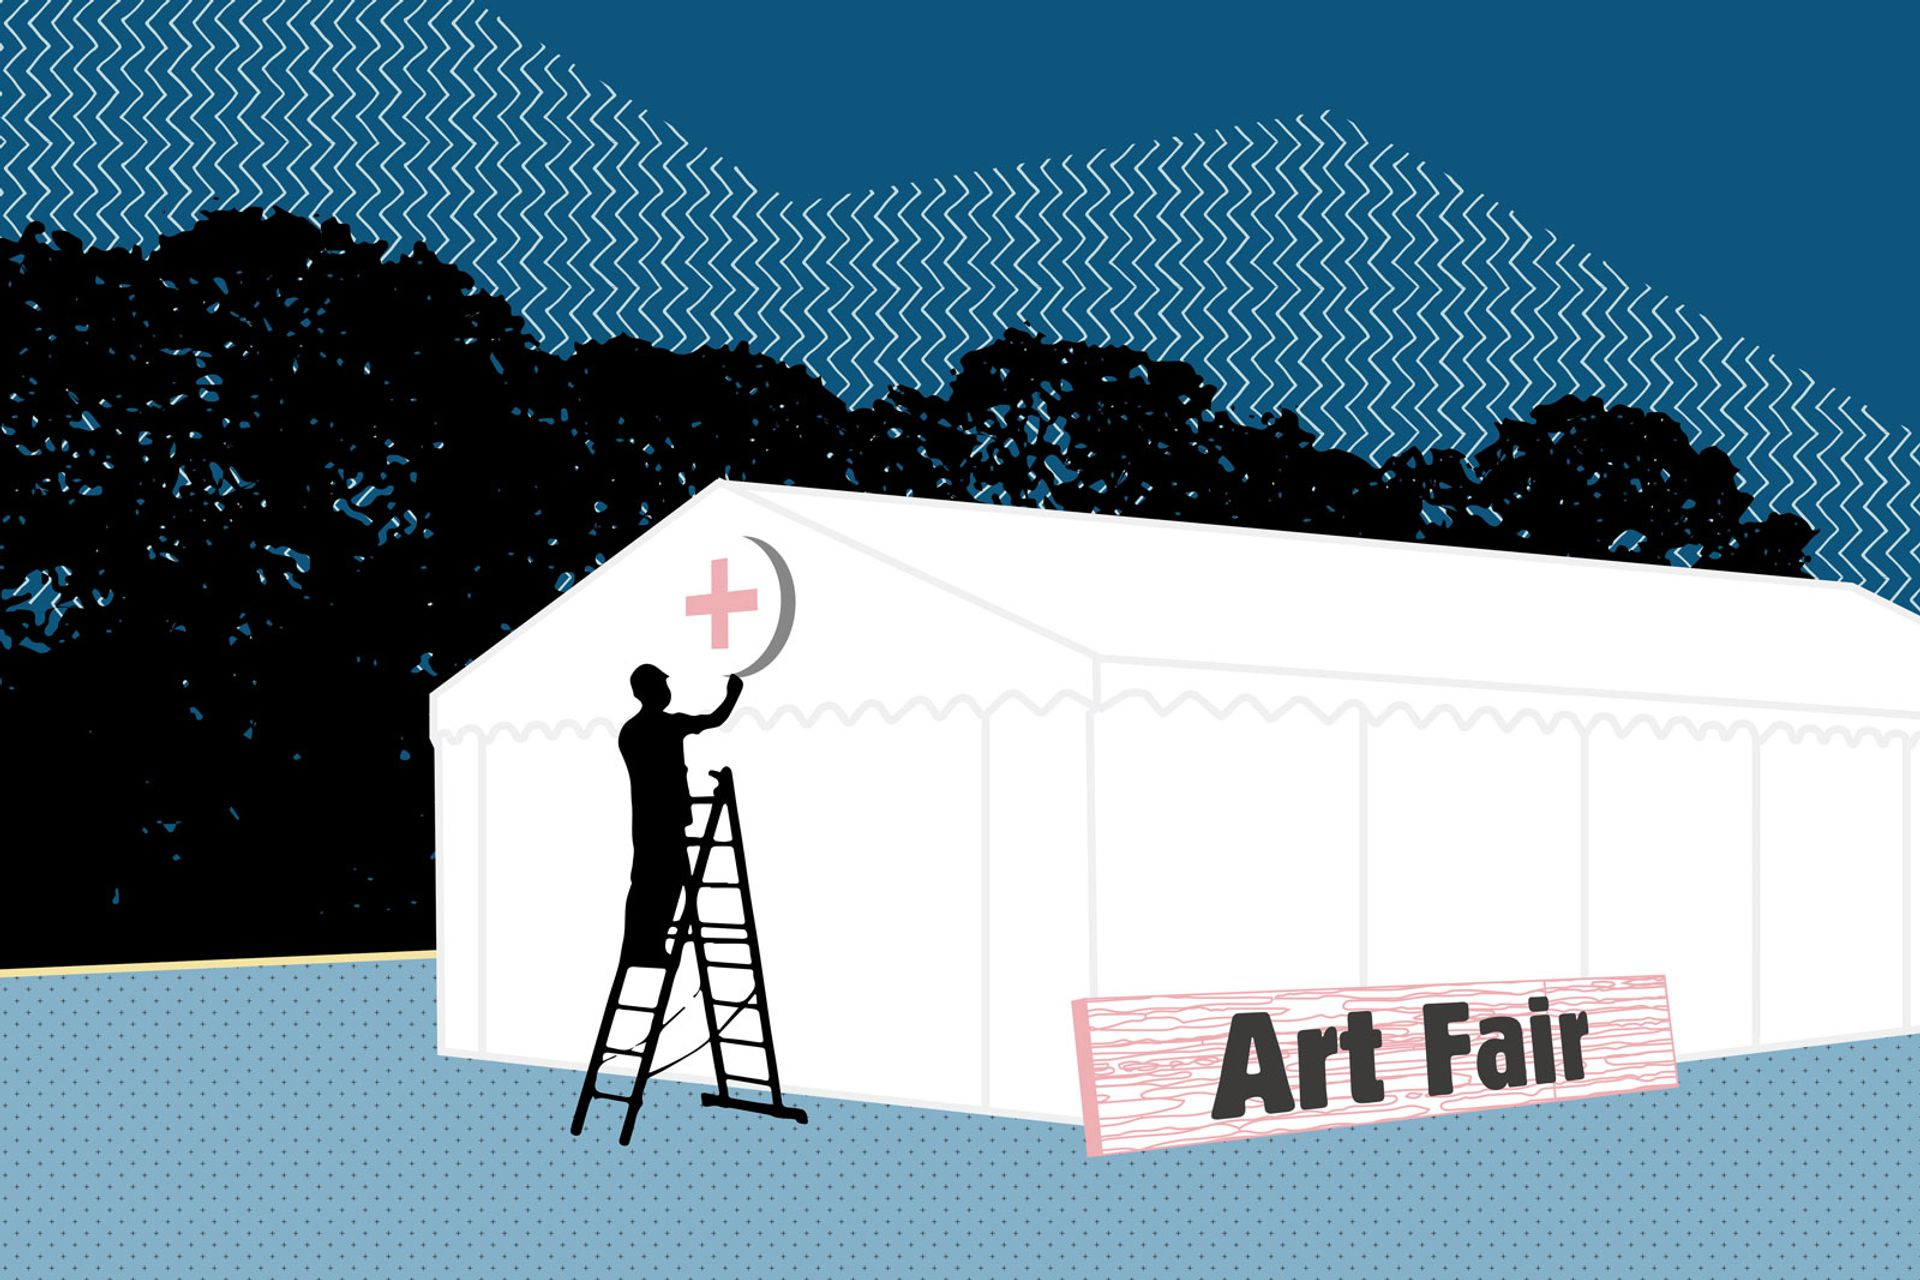 More than 20 fairs around the world have been cancelled or postponed due to the coronavirus pandemic Illustration: © Katherine Hardy